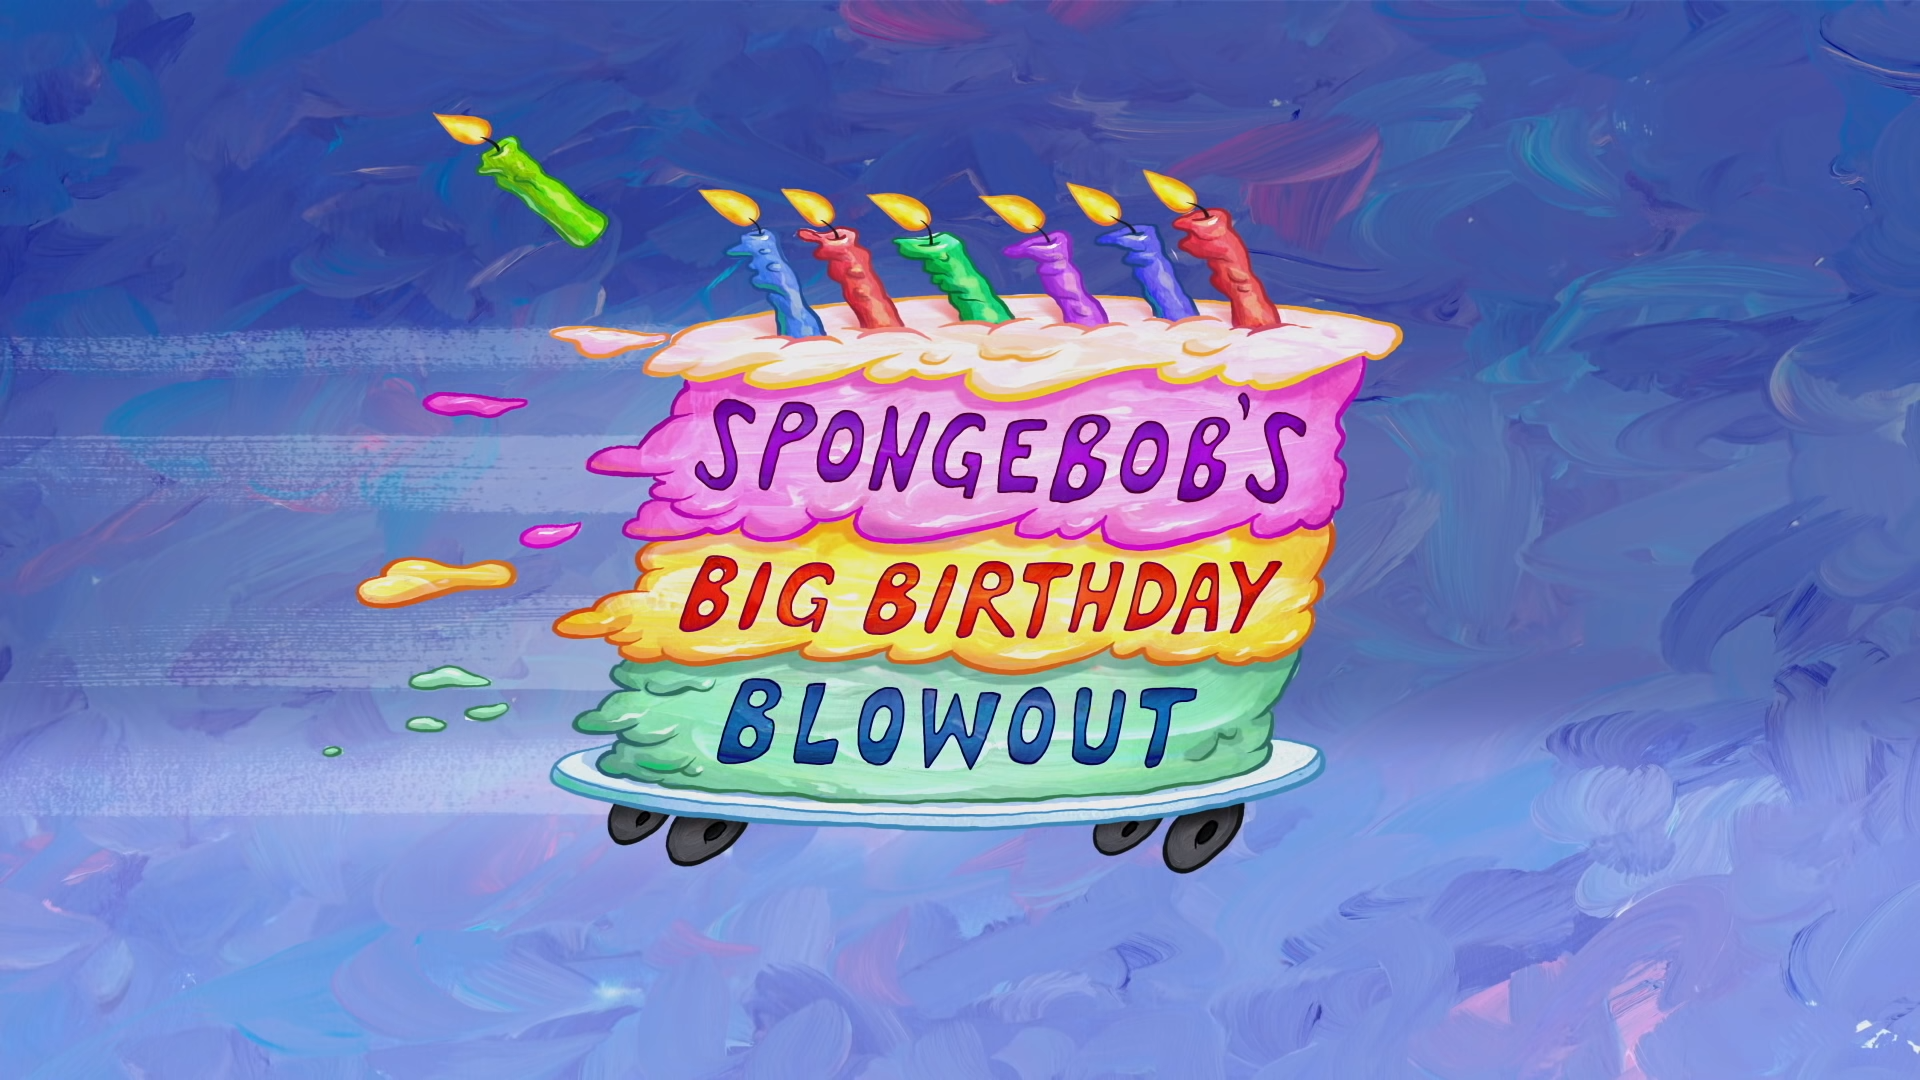 Image result for spongebob birthday blowout